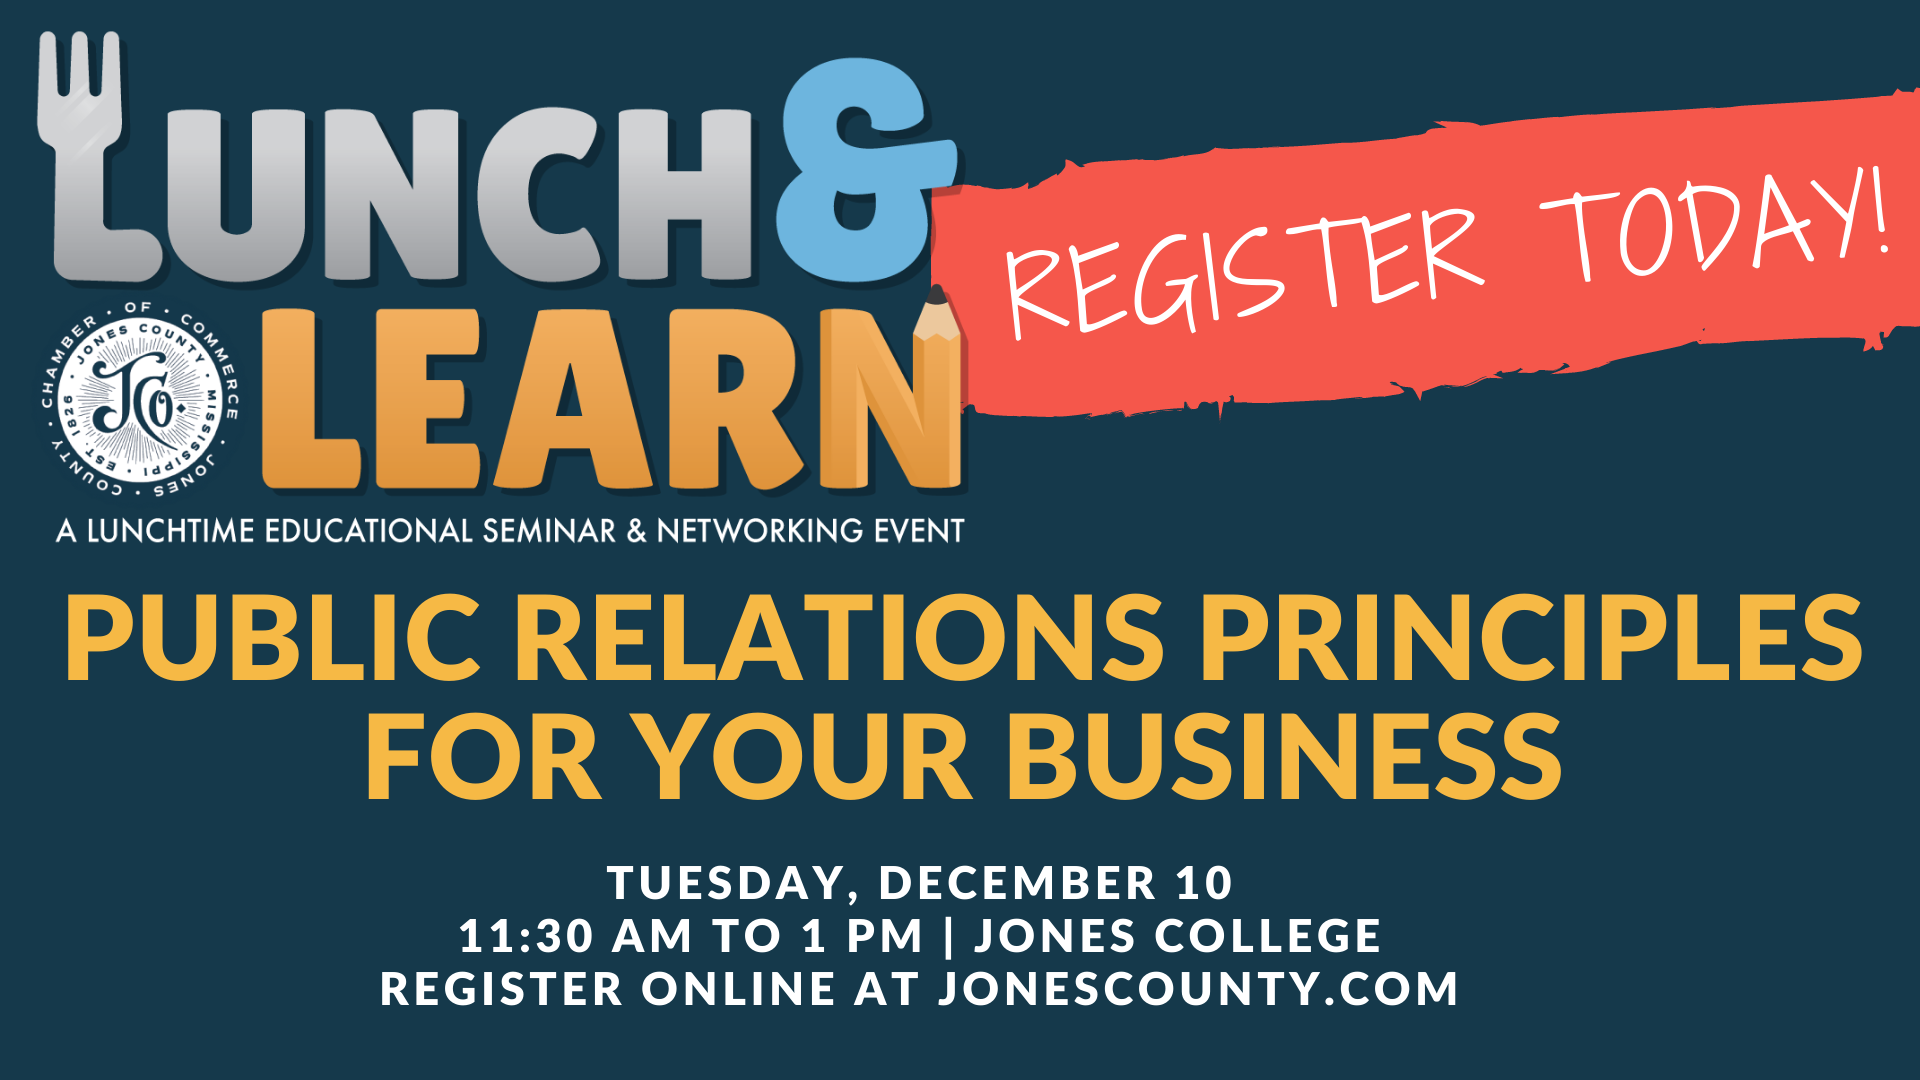 The City of Laurel, Lunch & Learn: Public Relations Principles for Your Business